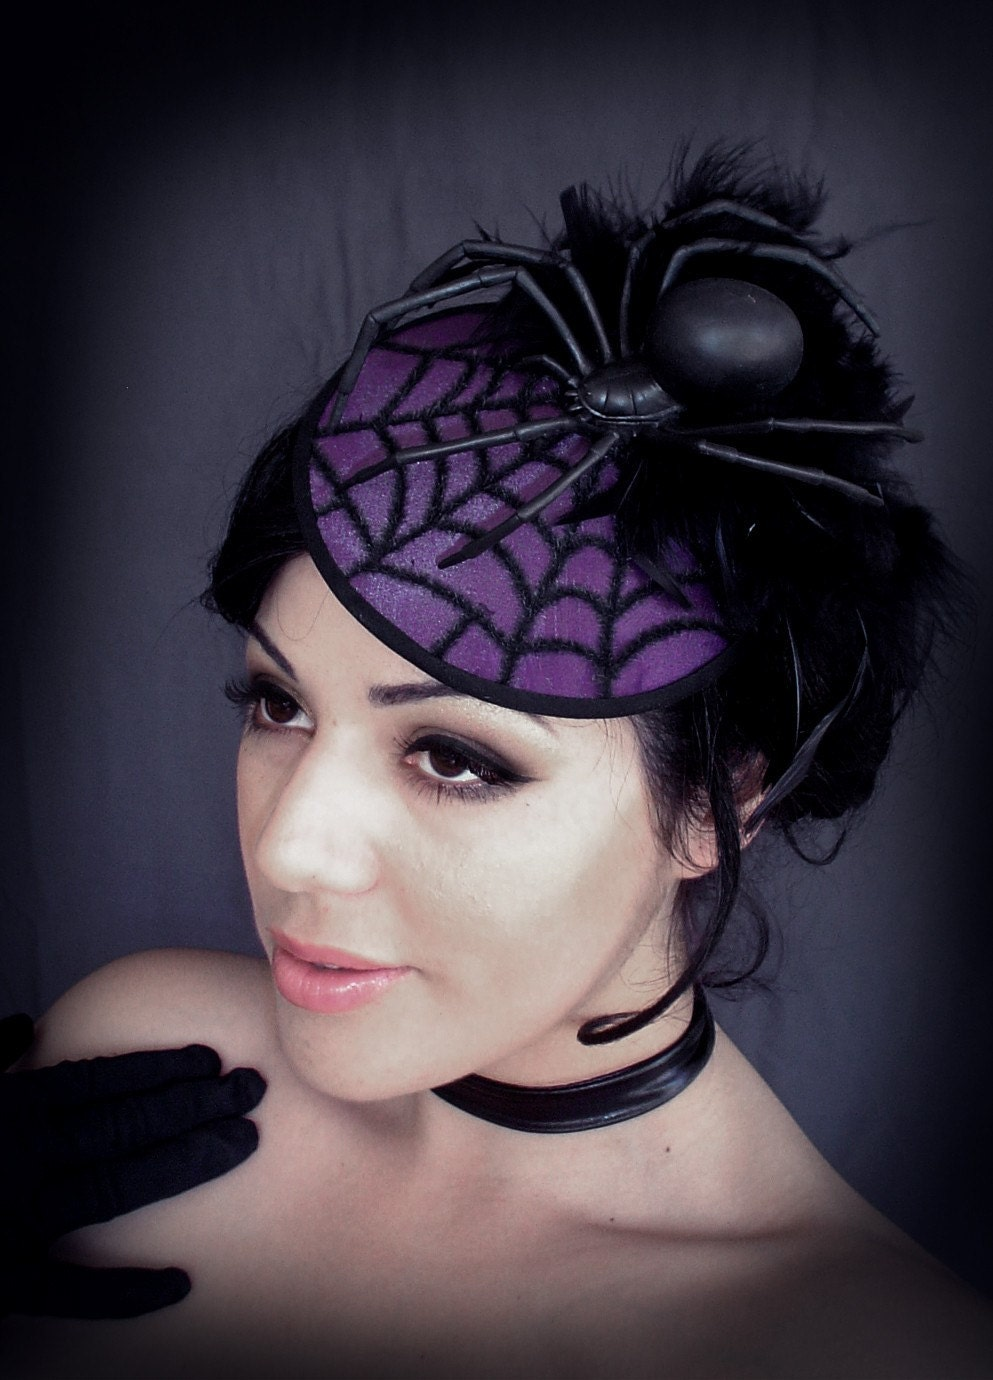 BLACK WIDOW - Spider Millinery Fascinator Hat